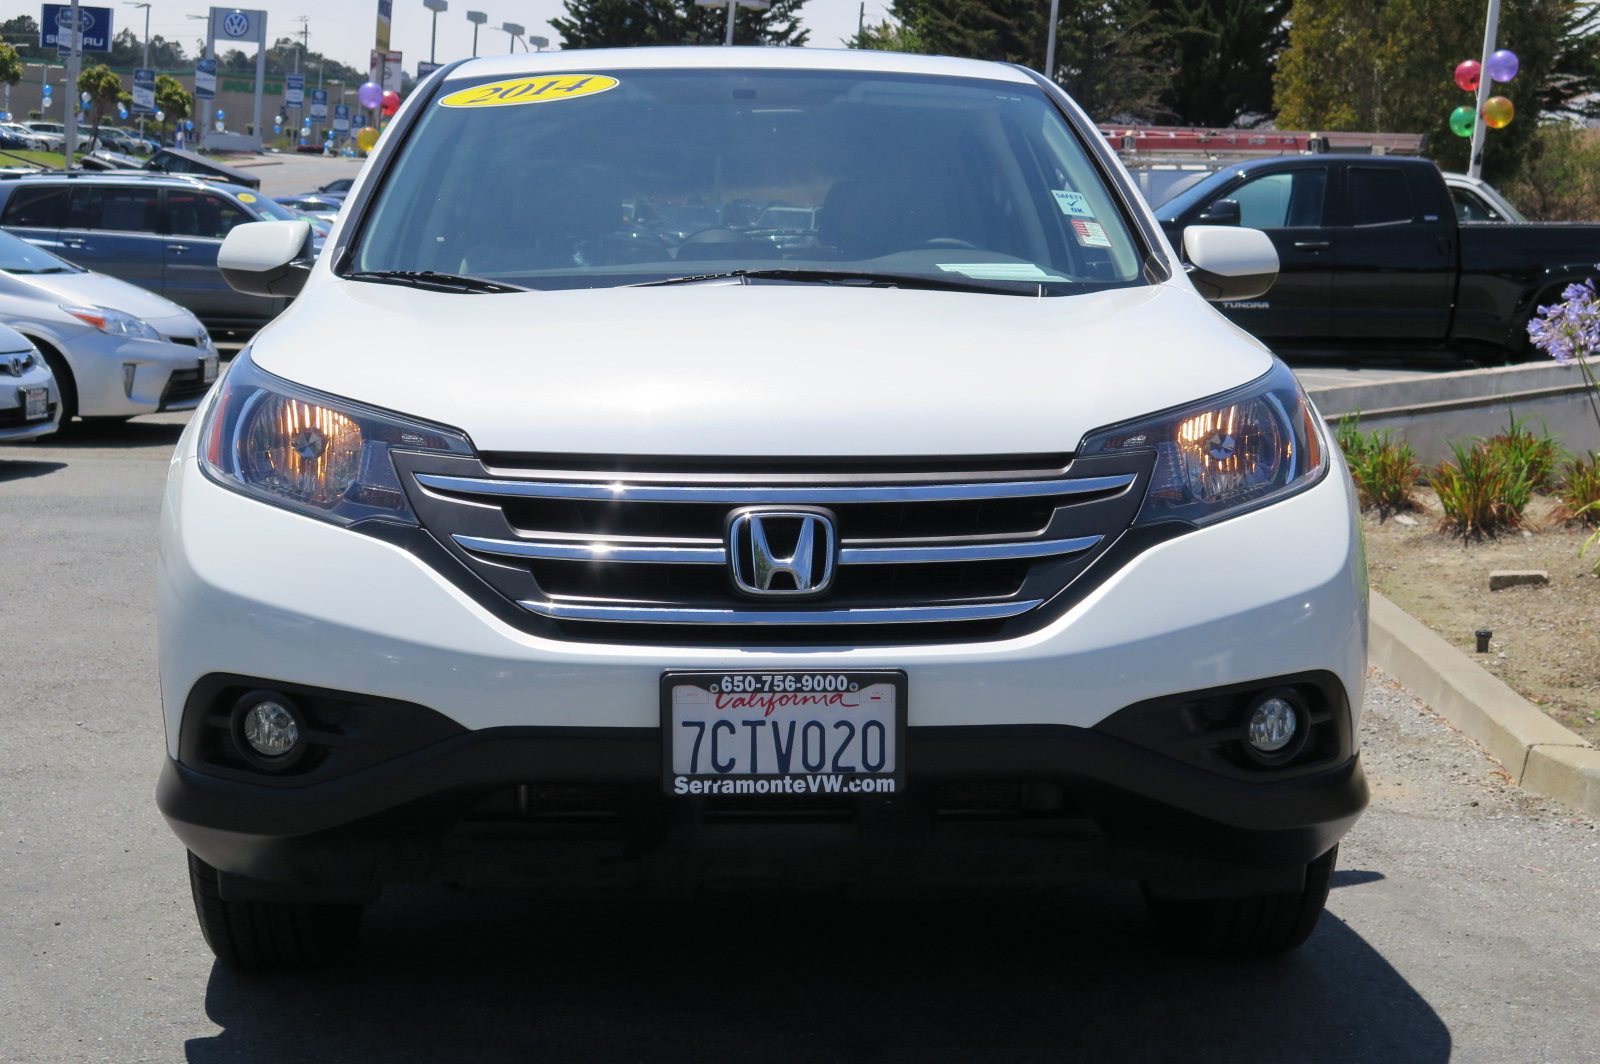 2014 HONDA CR-V CR-V white 24l inline 4 automatic check out our 2014 cr v  this california ho